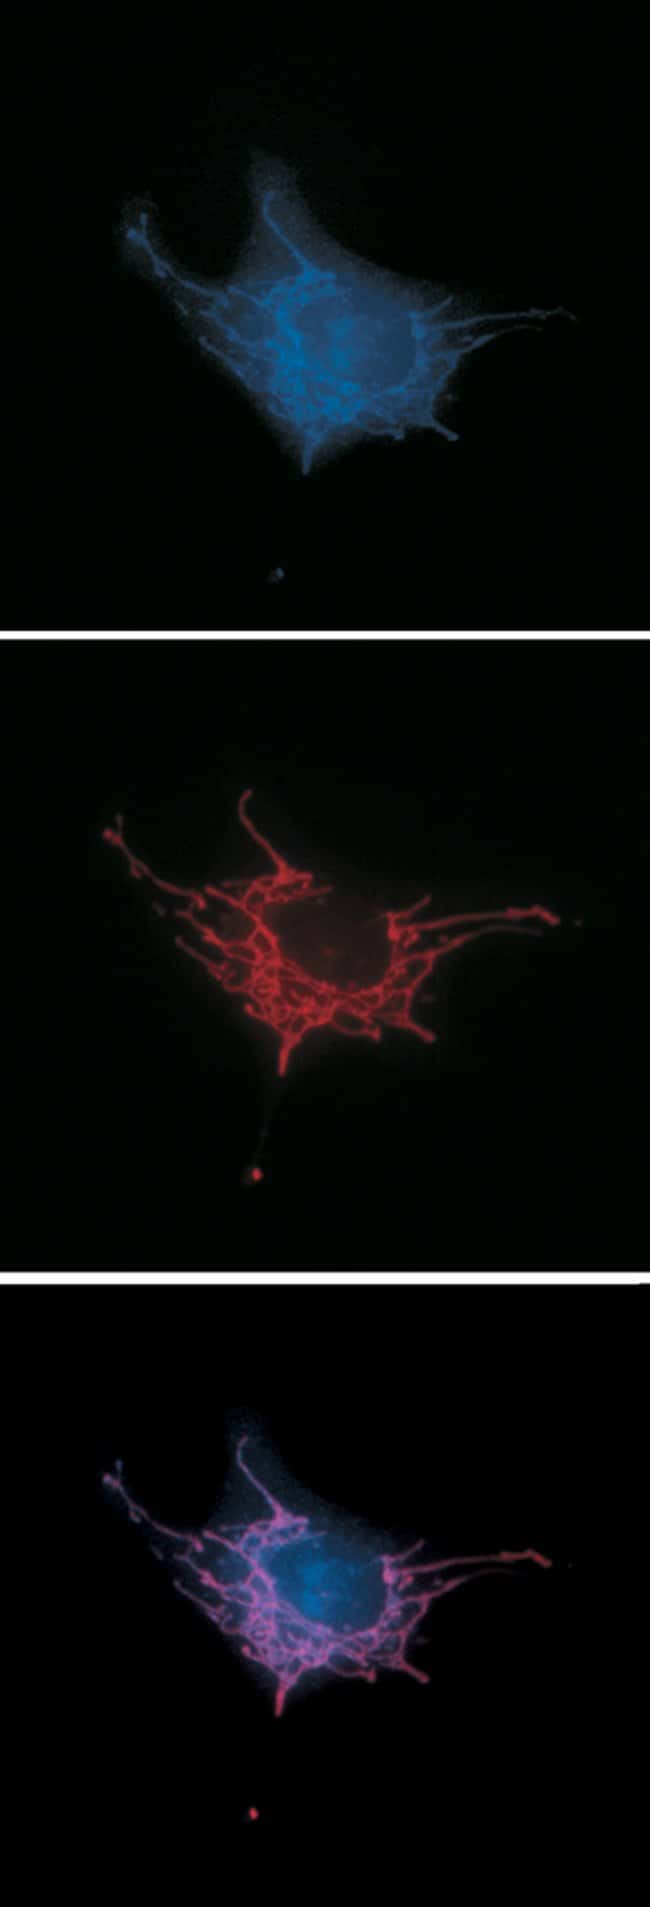 Live bovine pulmonary artery endothelial cells loaded with MitoTracker® Red CMXRos (Cat. no. M7512) then fixed and permeabilized. The cells were then treated with a cocktail containing two antibodies